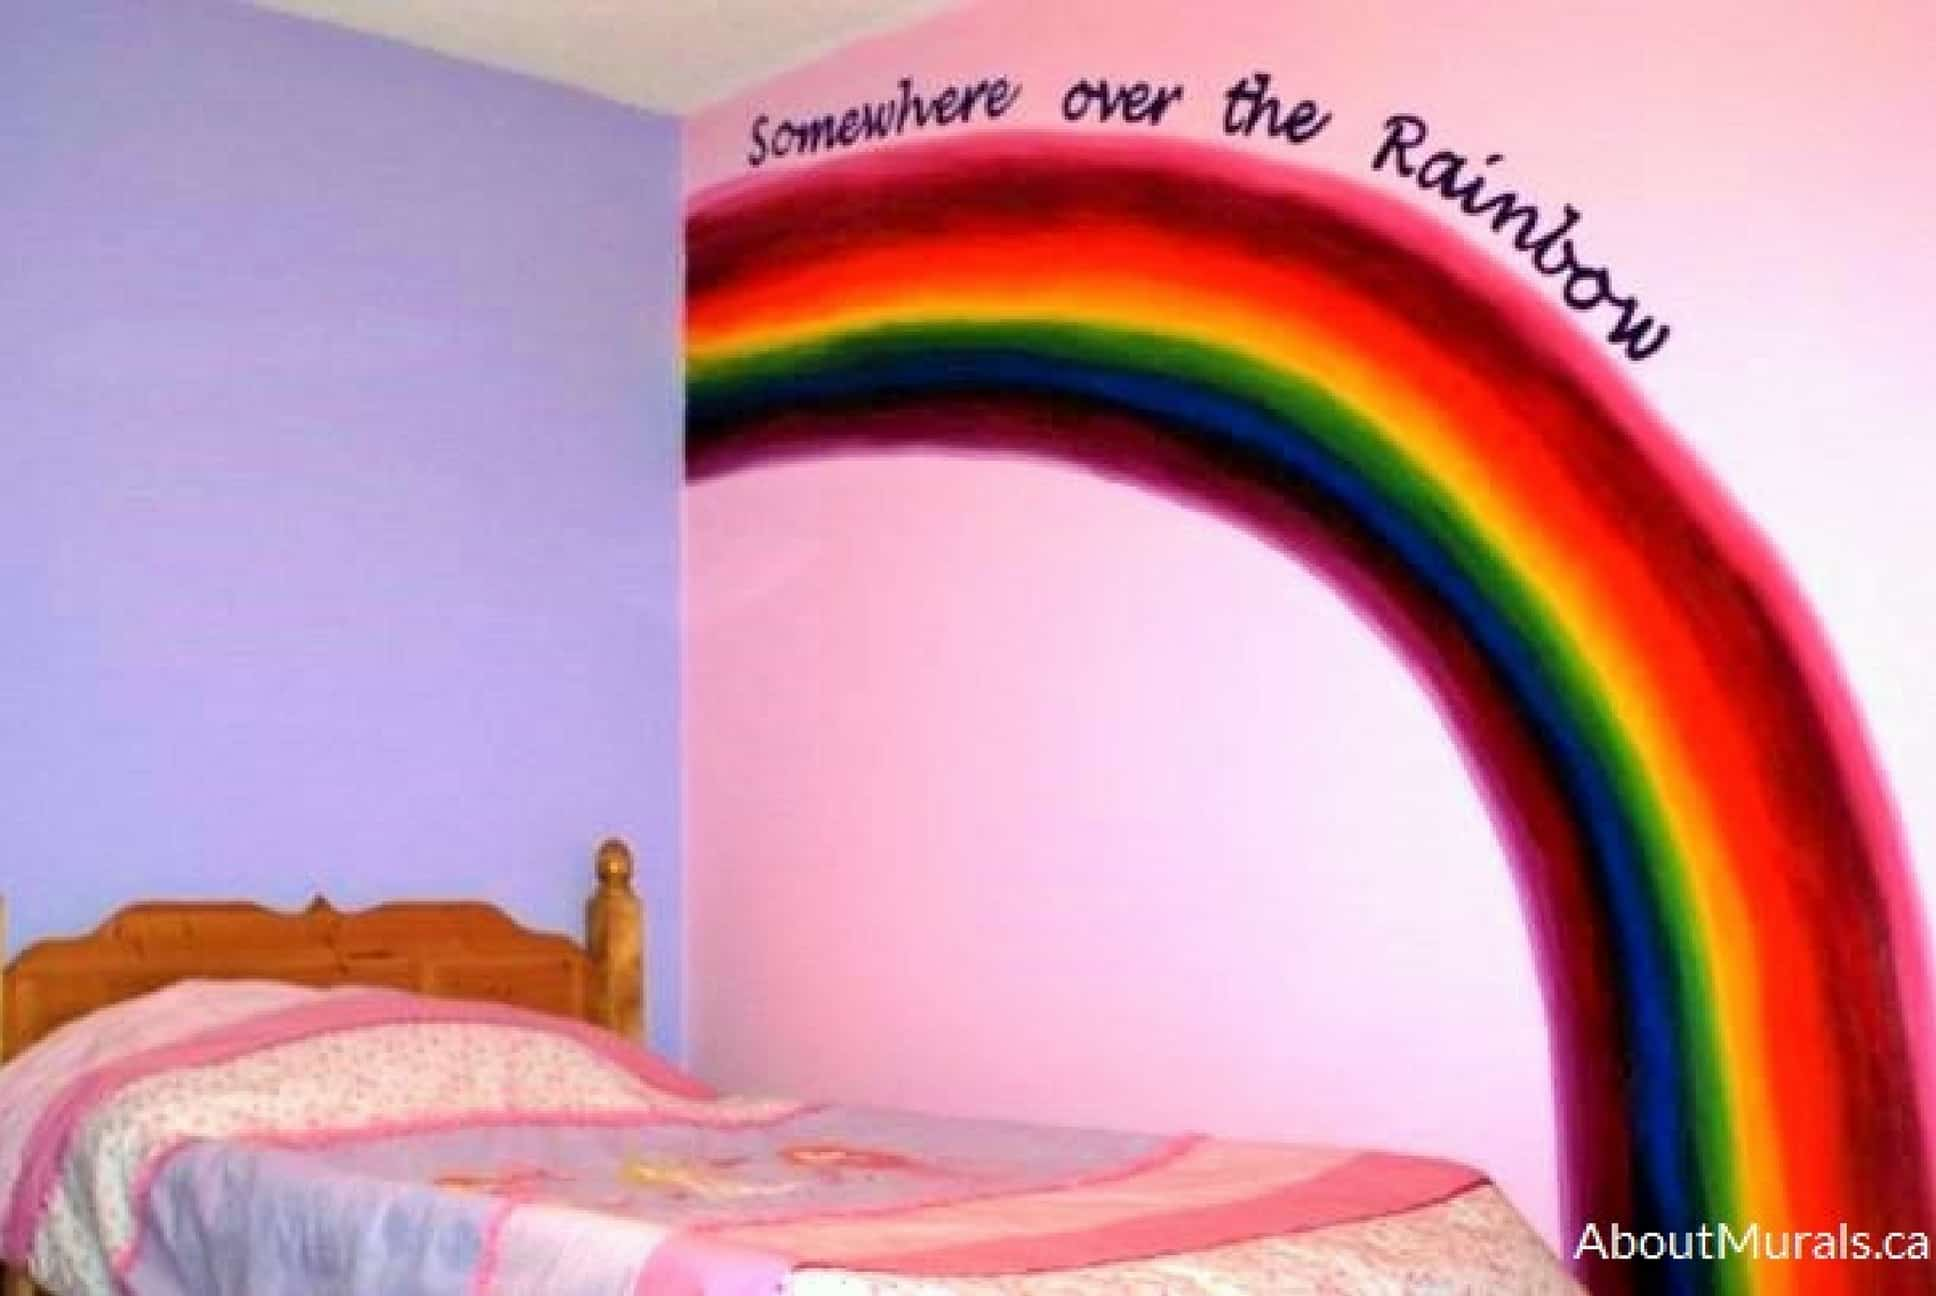 A rainbow mural painted on a pink wall in a girl's bedroom